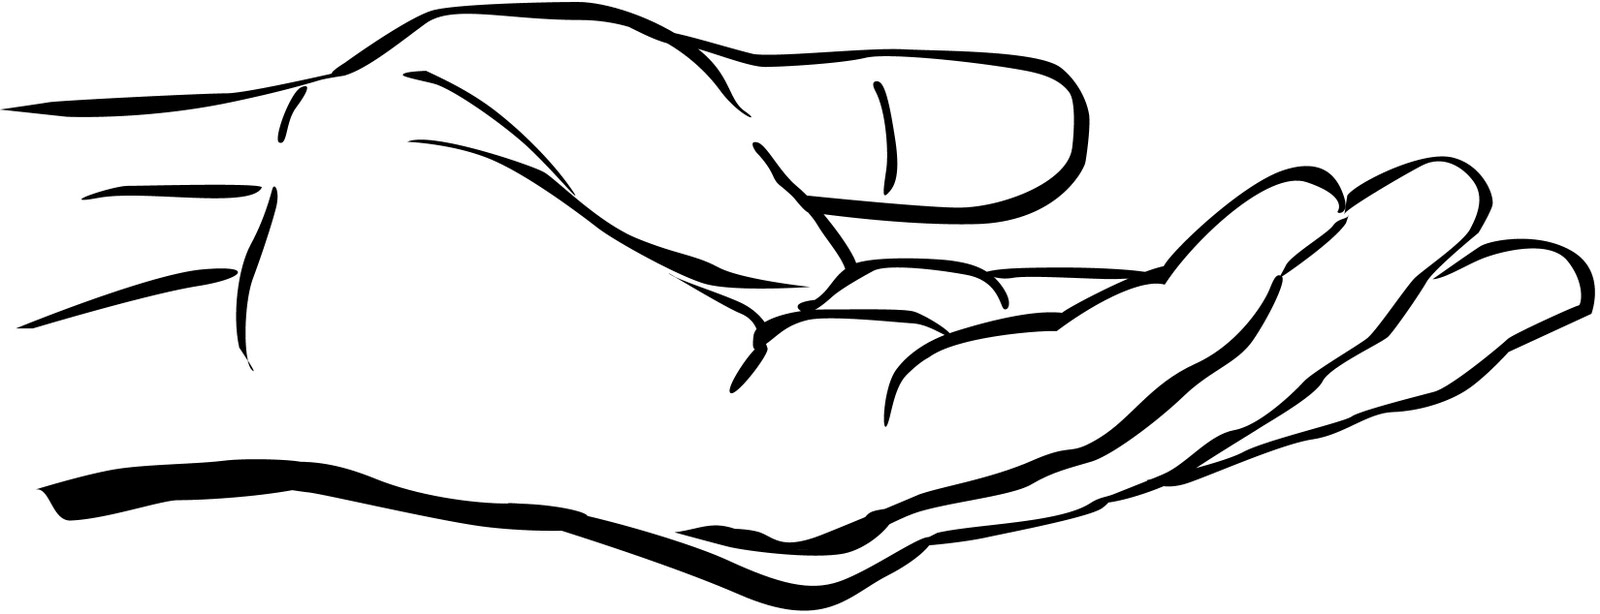 Two Hands Black And White Clipart - Clipart Suggest